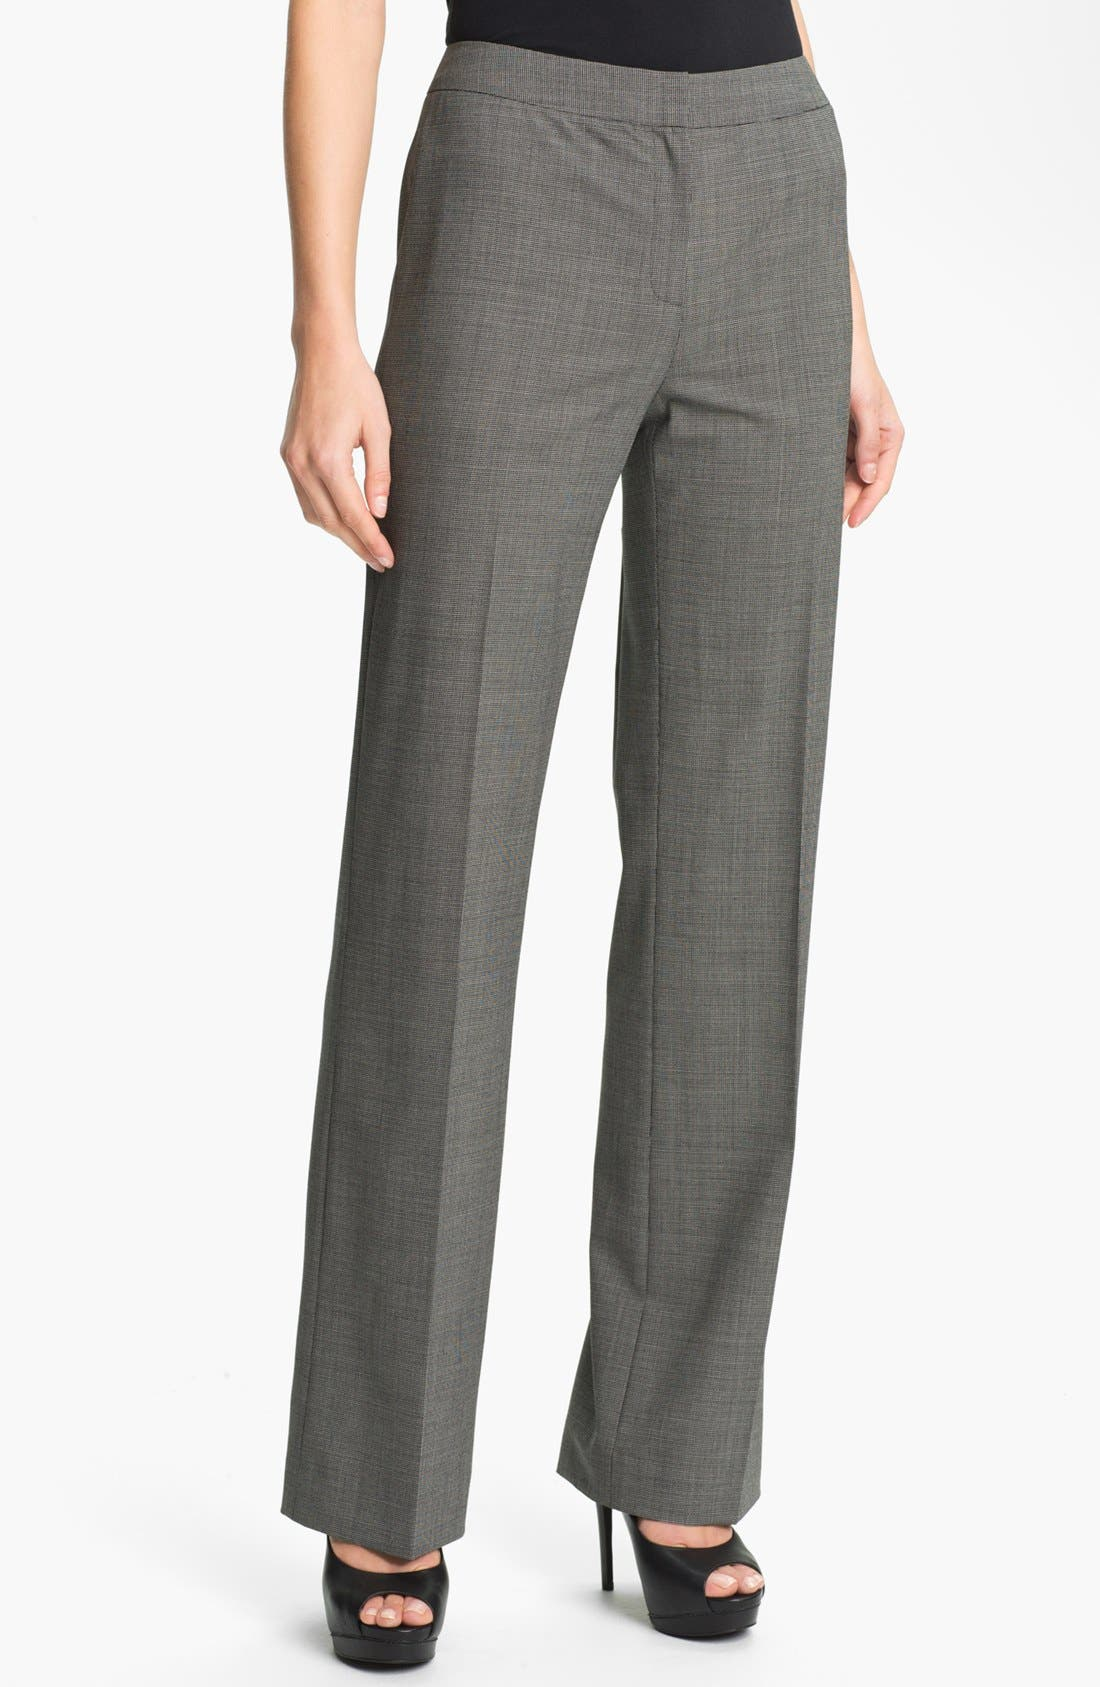 Alternate Image 1 Selected - Lafayette 148 New York Crosshatch Suiting Pants (Petite)